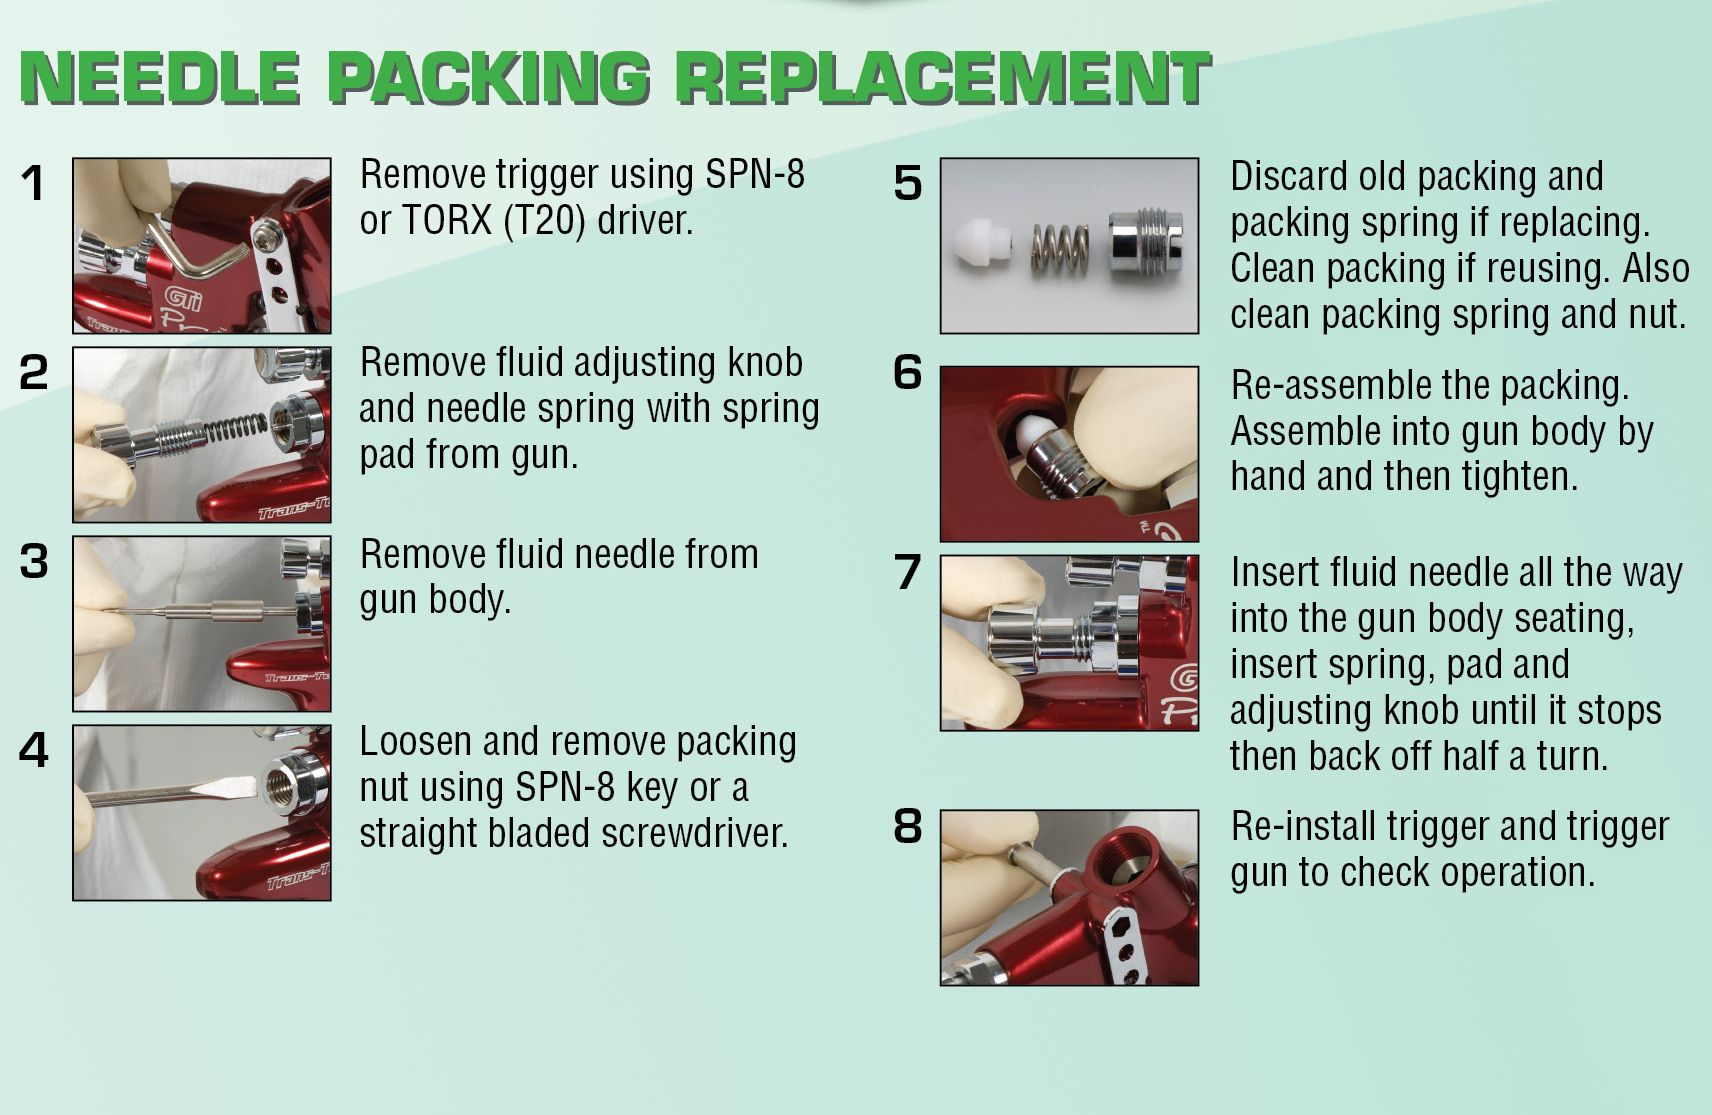 Needlepackingreplacement